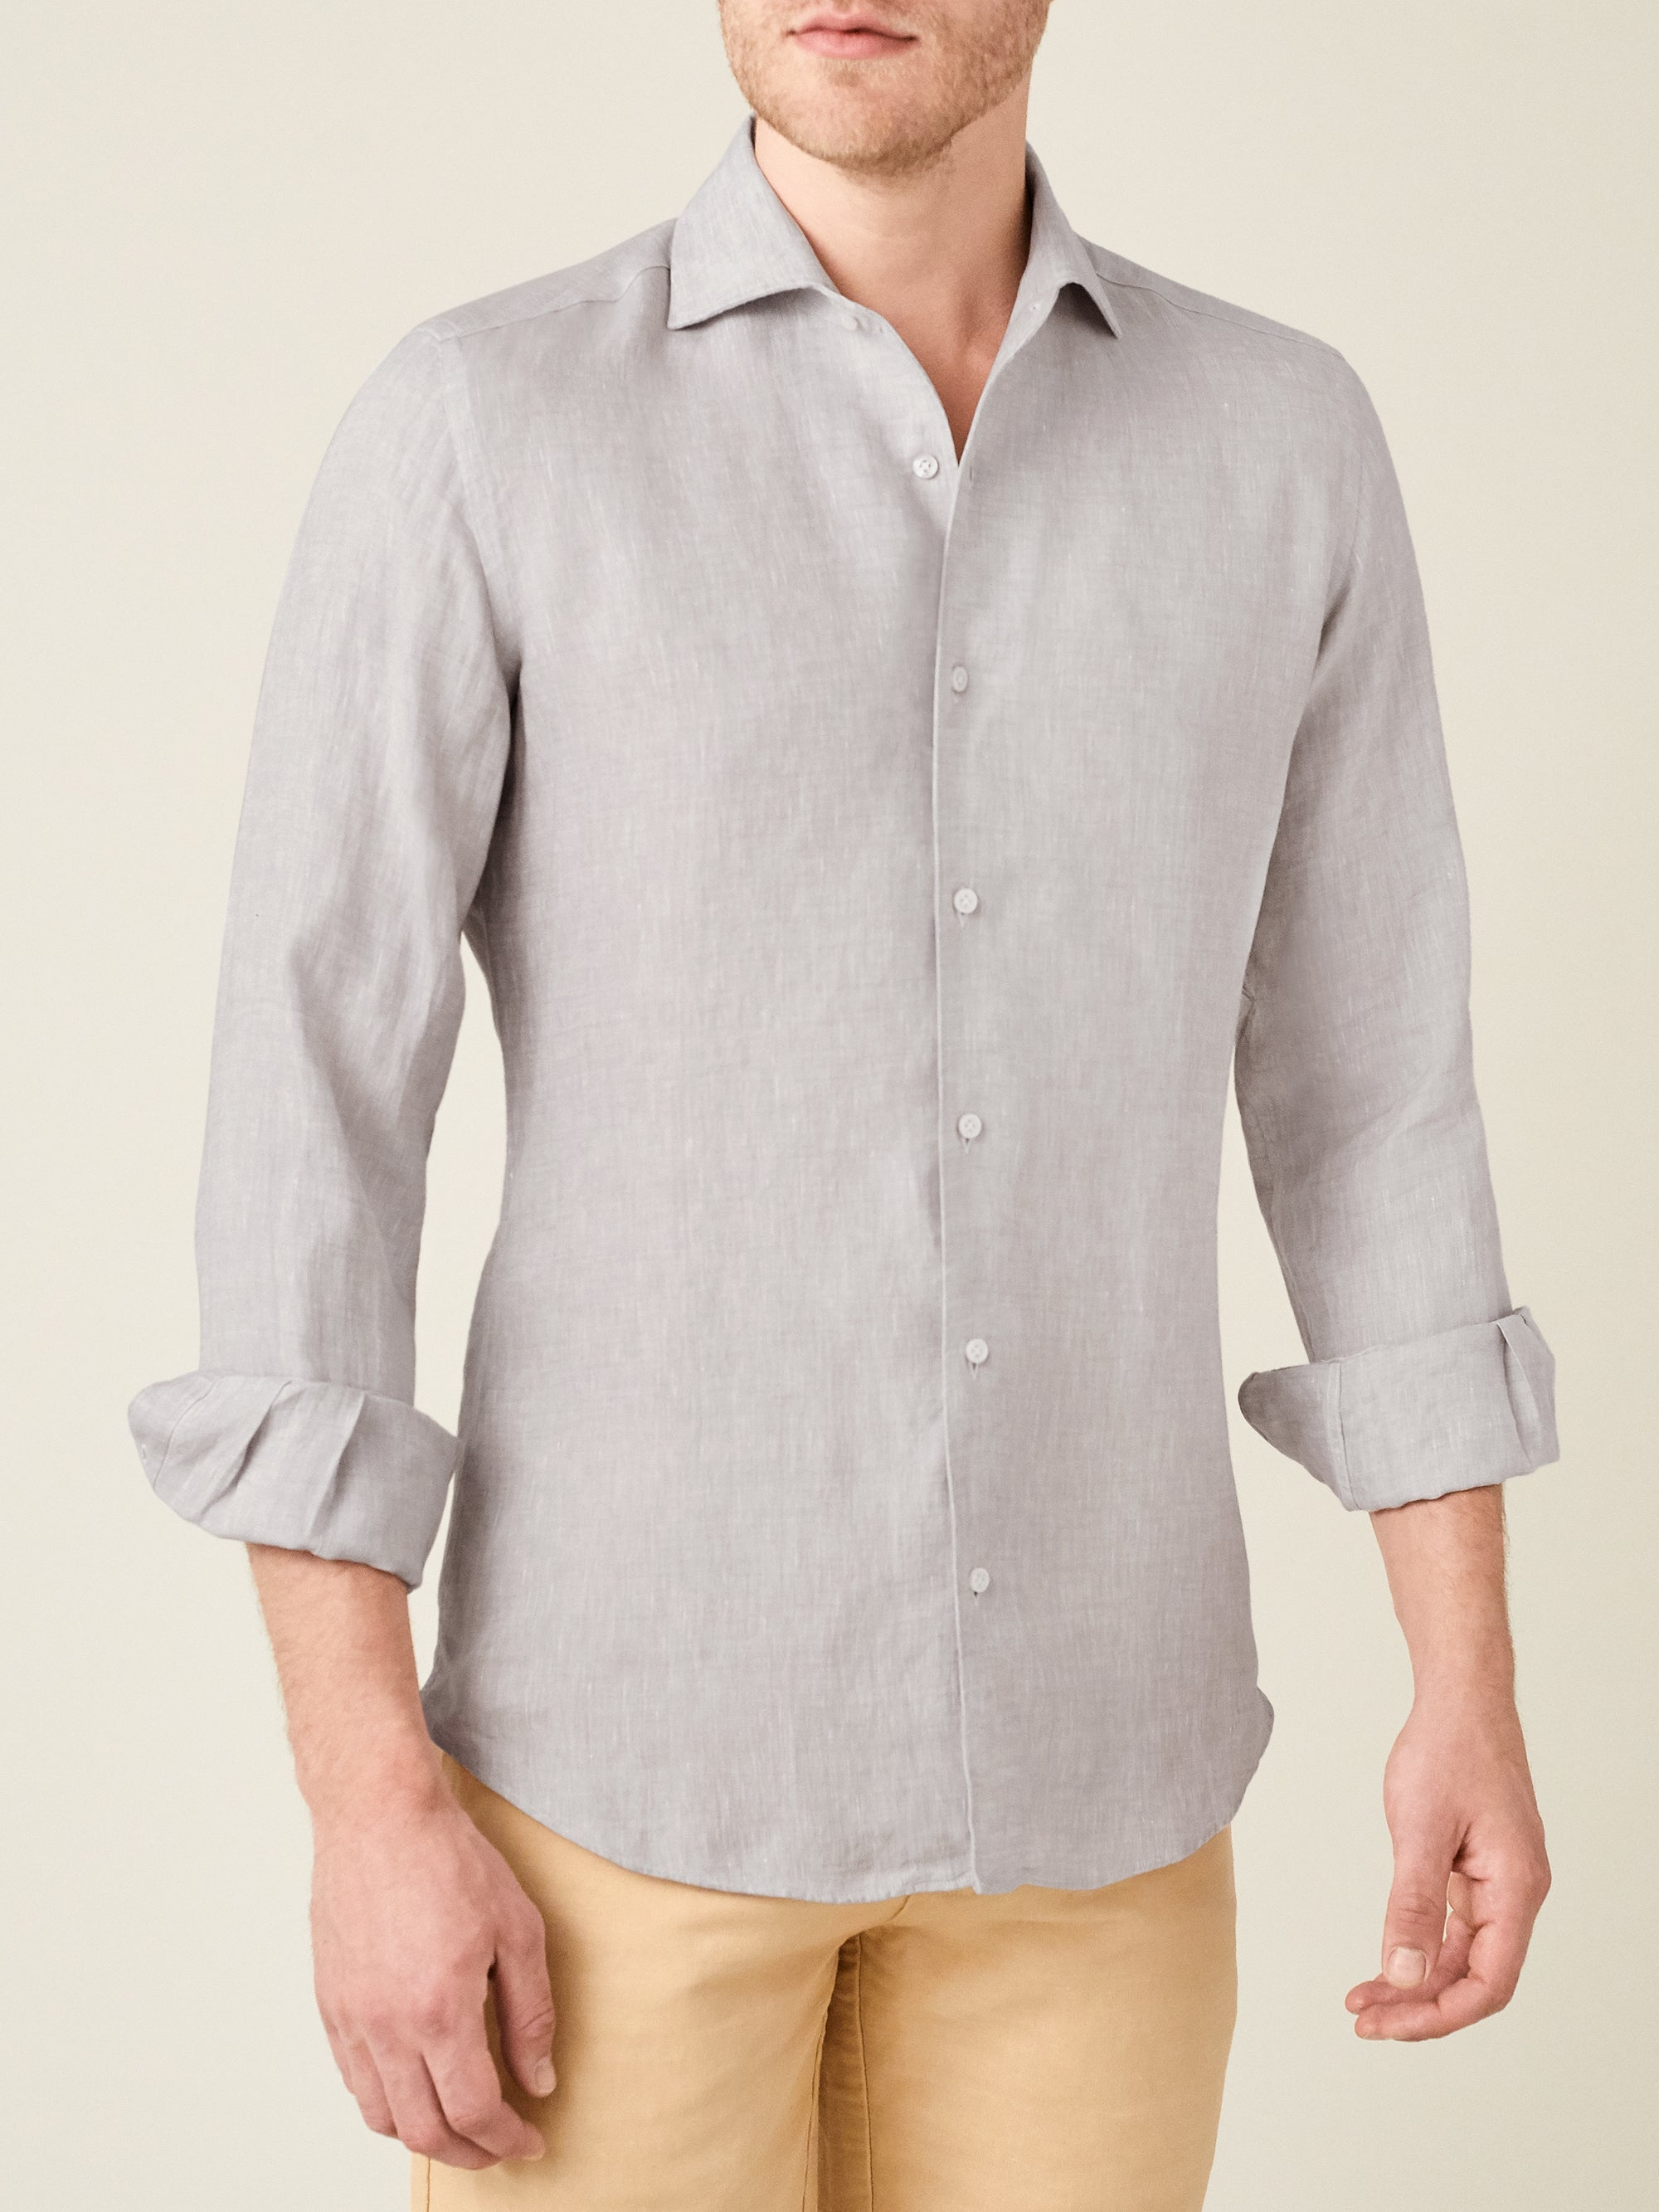 Luca Faloni Light Grey Portofino Linen Shirt Made in Italy